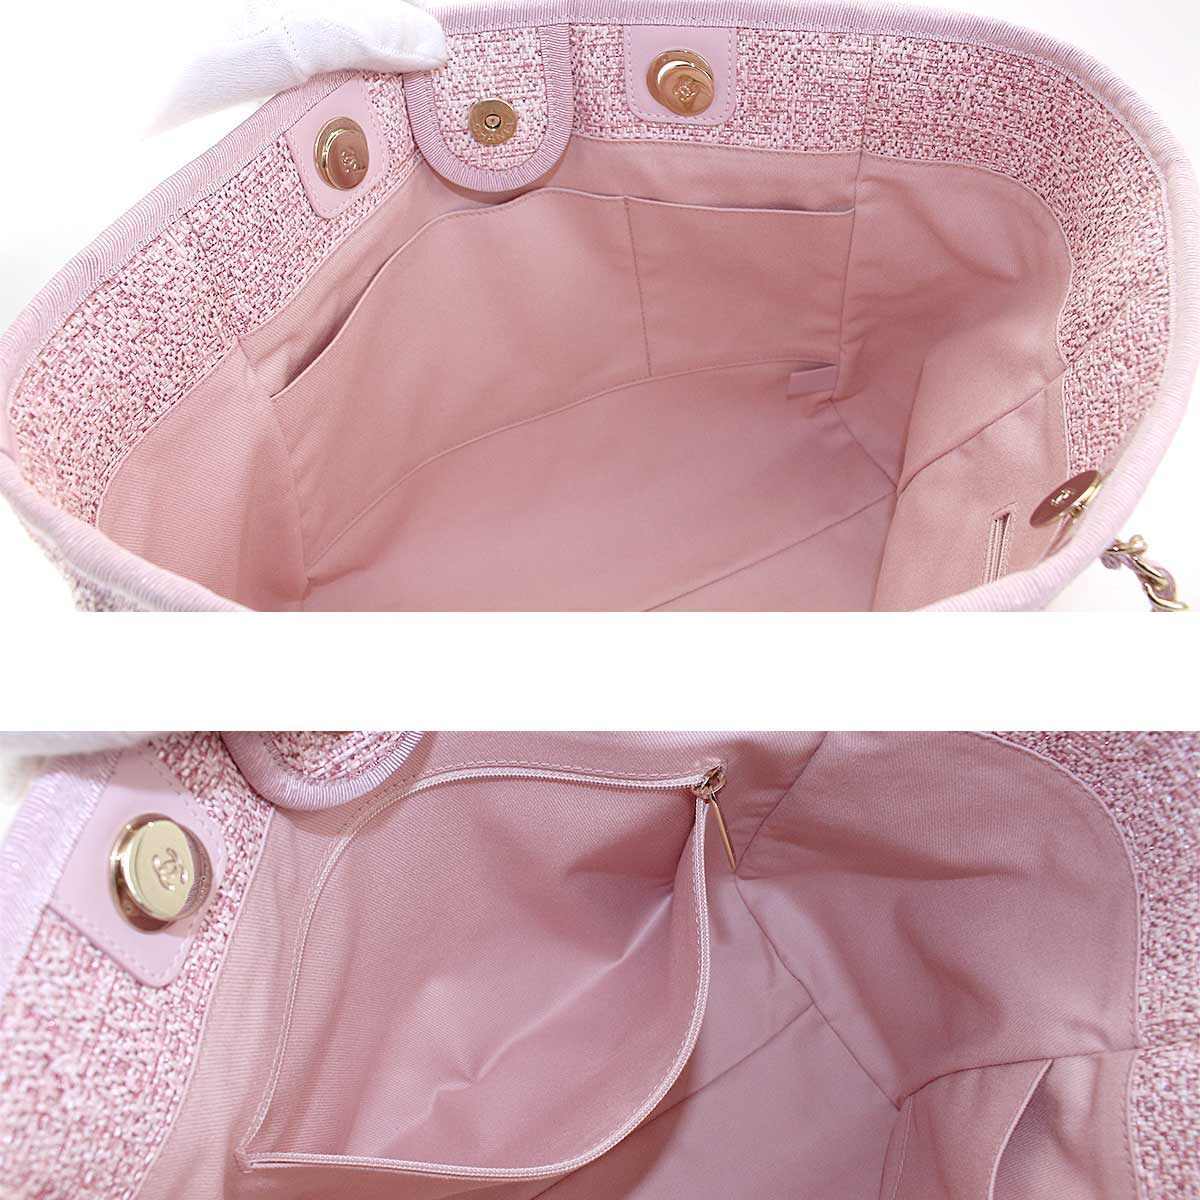 00163d266 Purpose Inc: Chanel CHANEL Deauville MM chain tote bag canvas pink ...